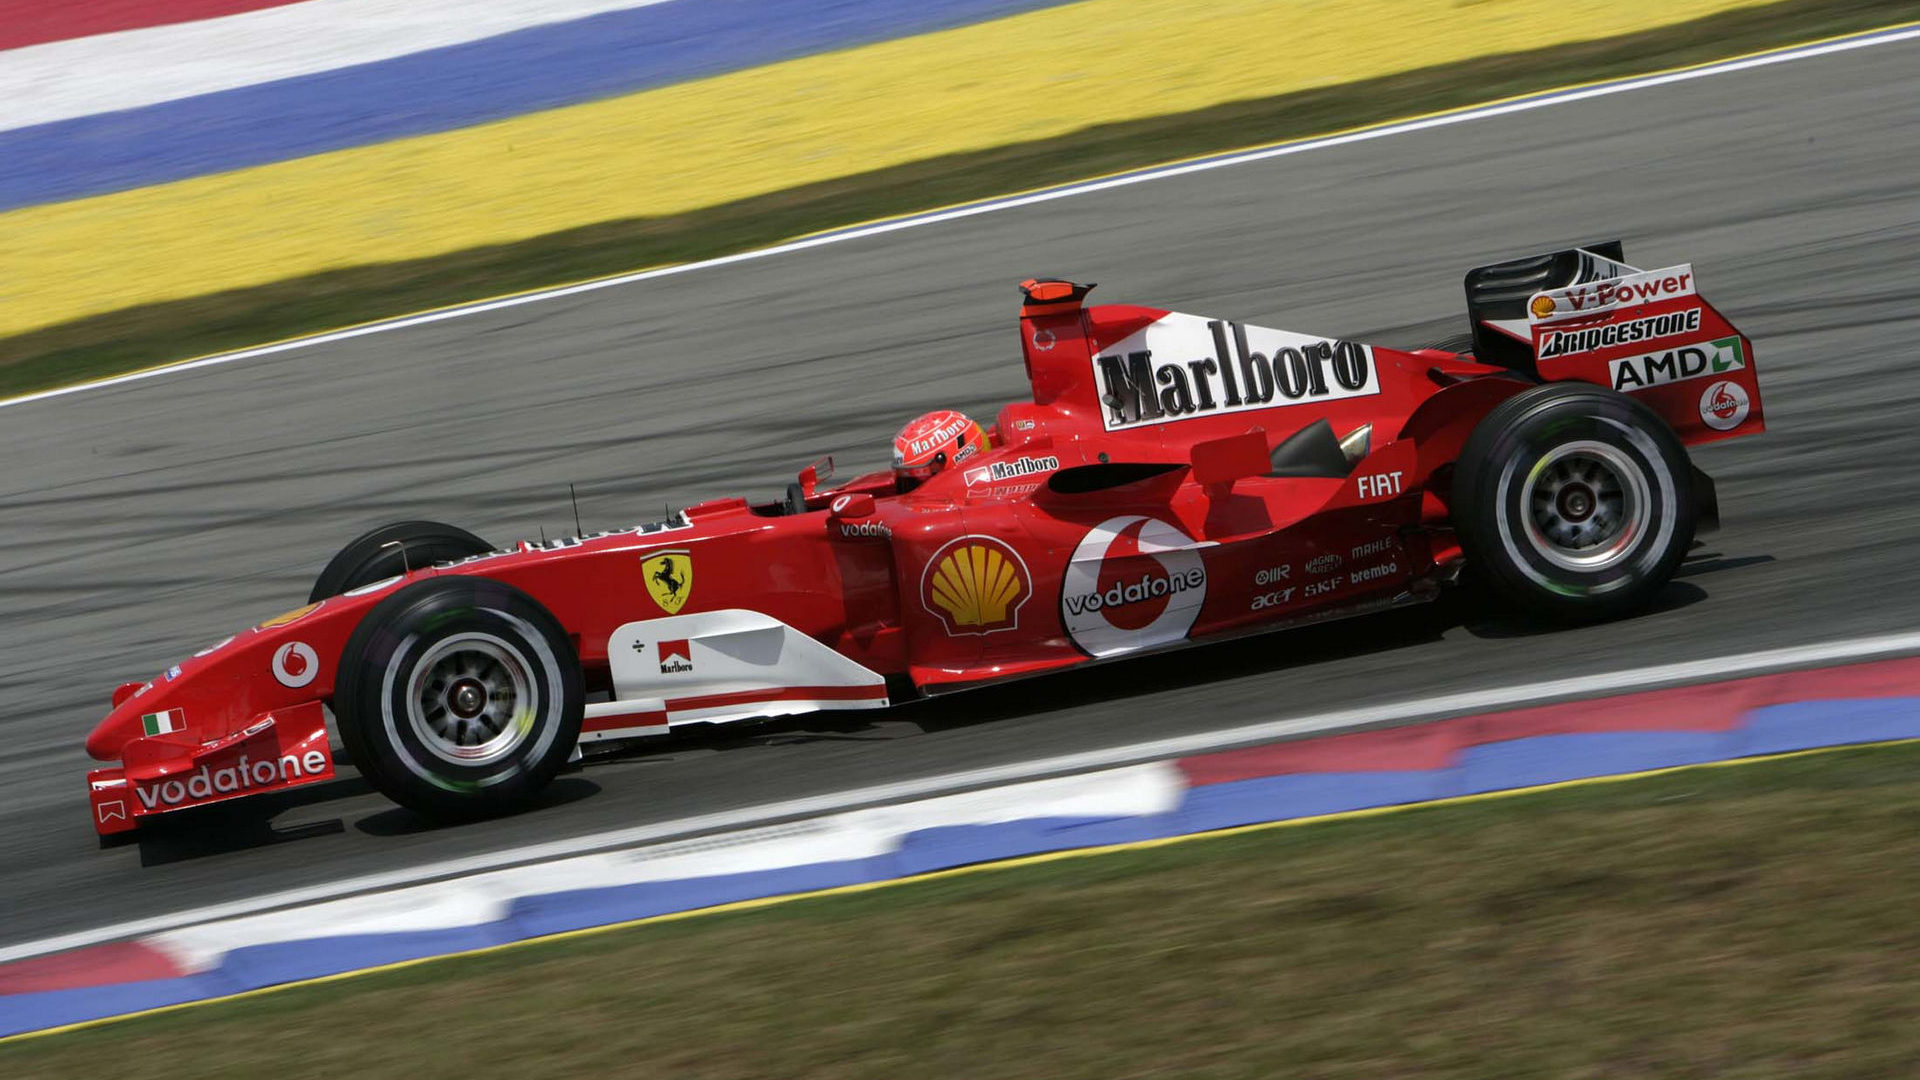 Hd Wallpapers 2005 Formula 1 Grand Prix Of Malaysia F1